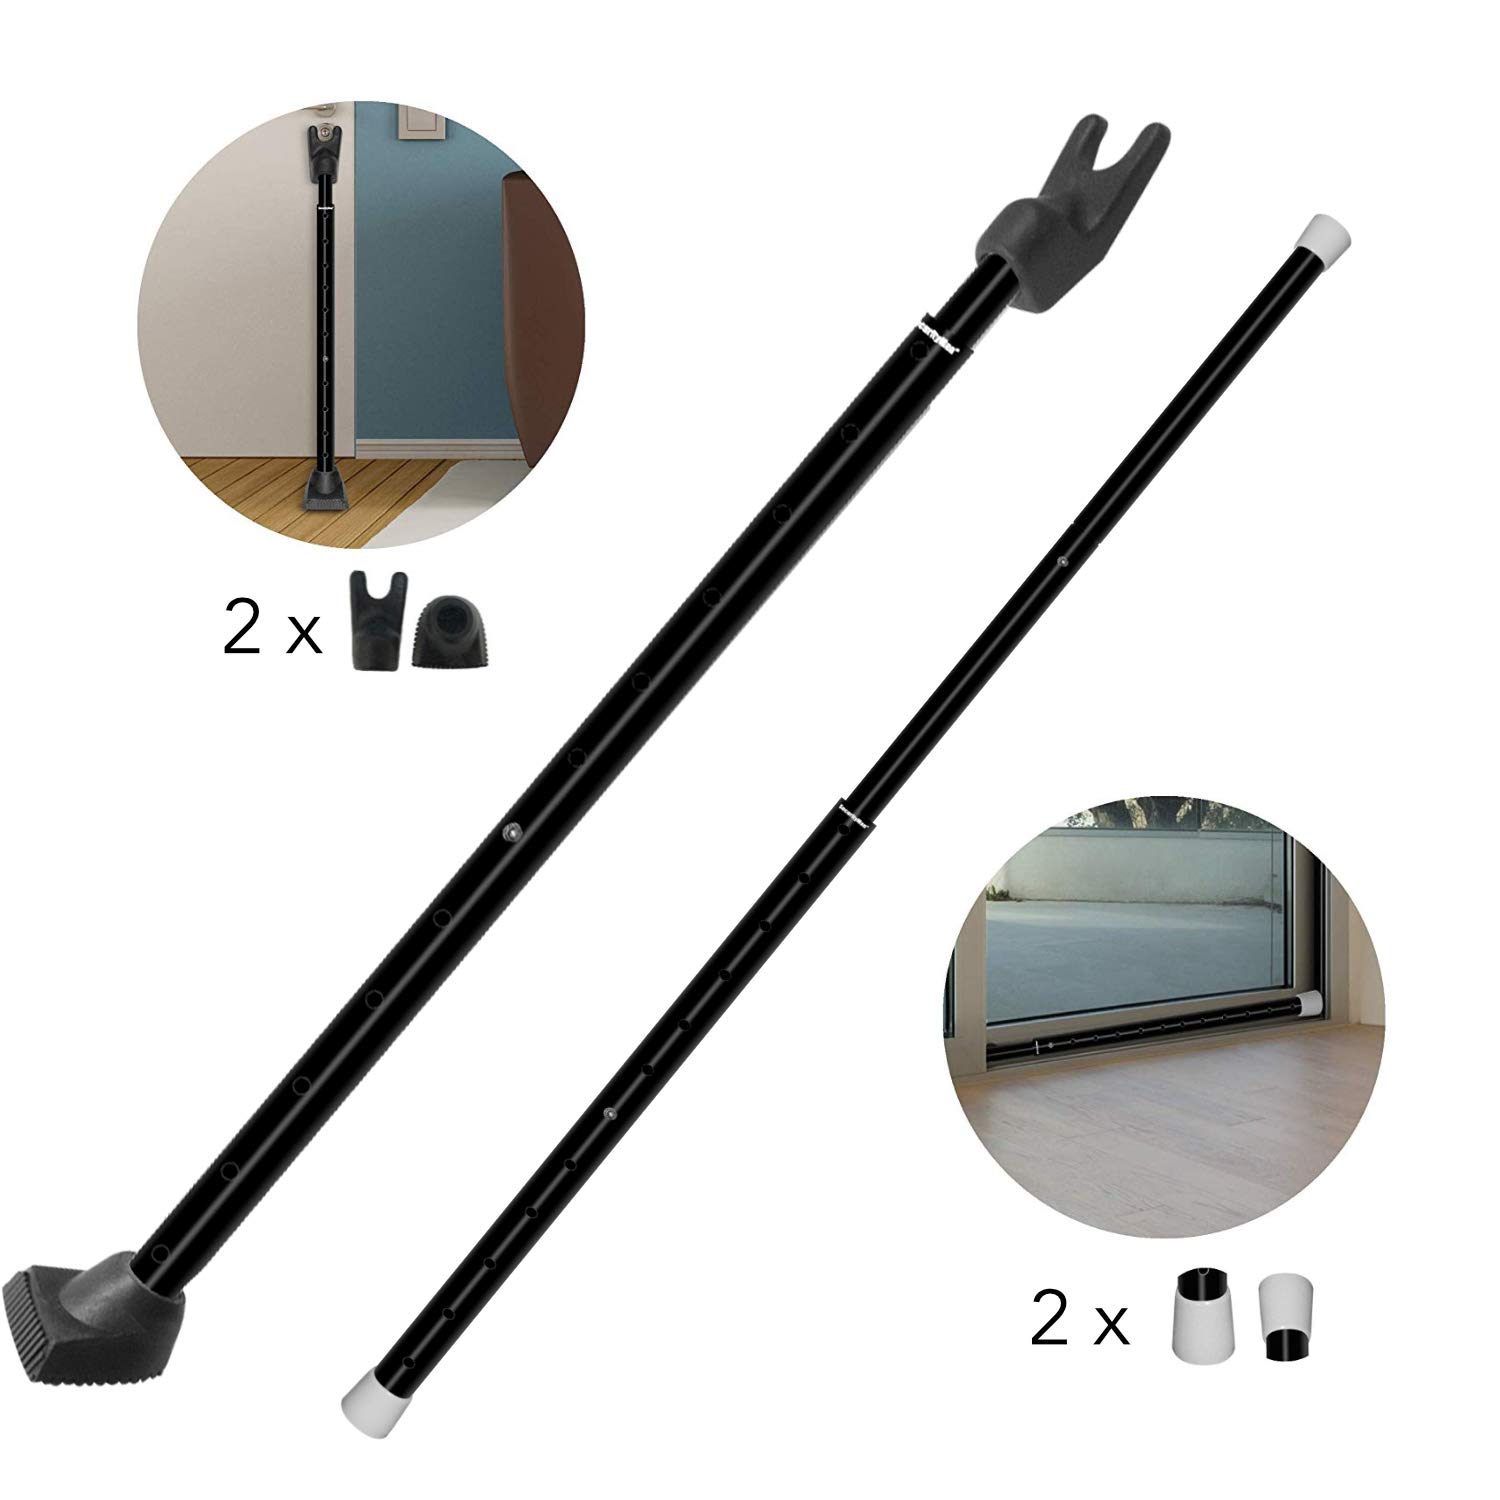 Securityman 2-in-1 Door Security Bar & Sliding Patio Door Security Bar - Constructed of High Grade Iron - Black - (2 Pack)